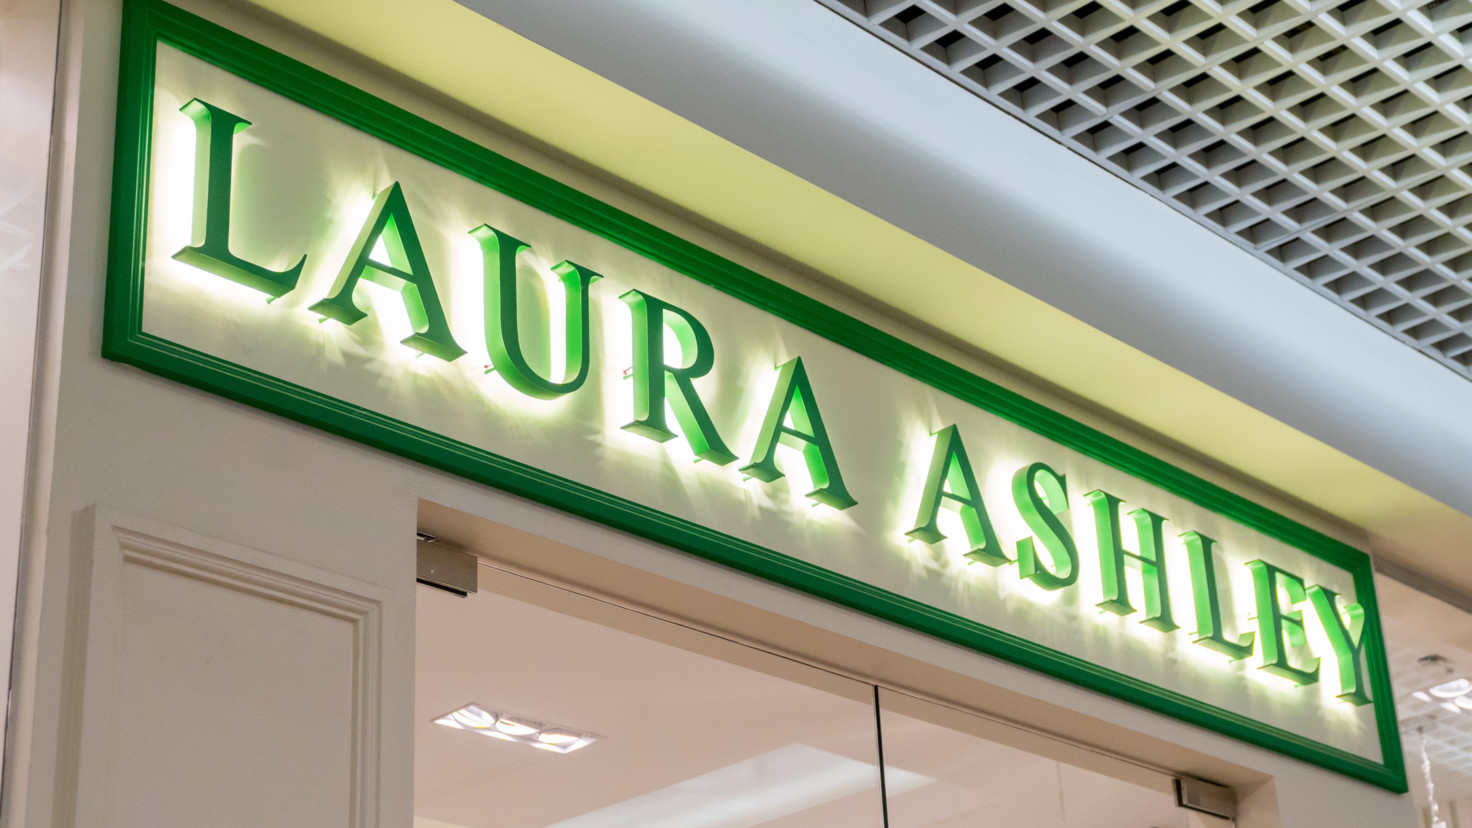 Laura Ashley saved from closure with 20m loan